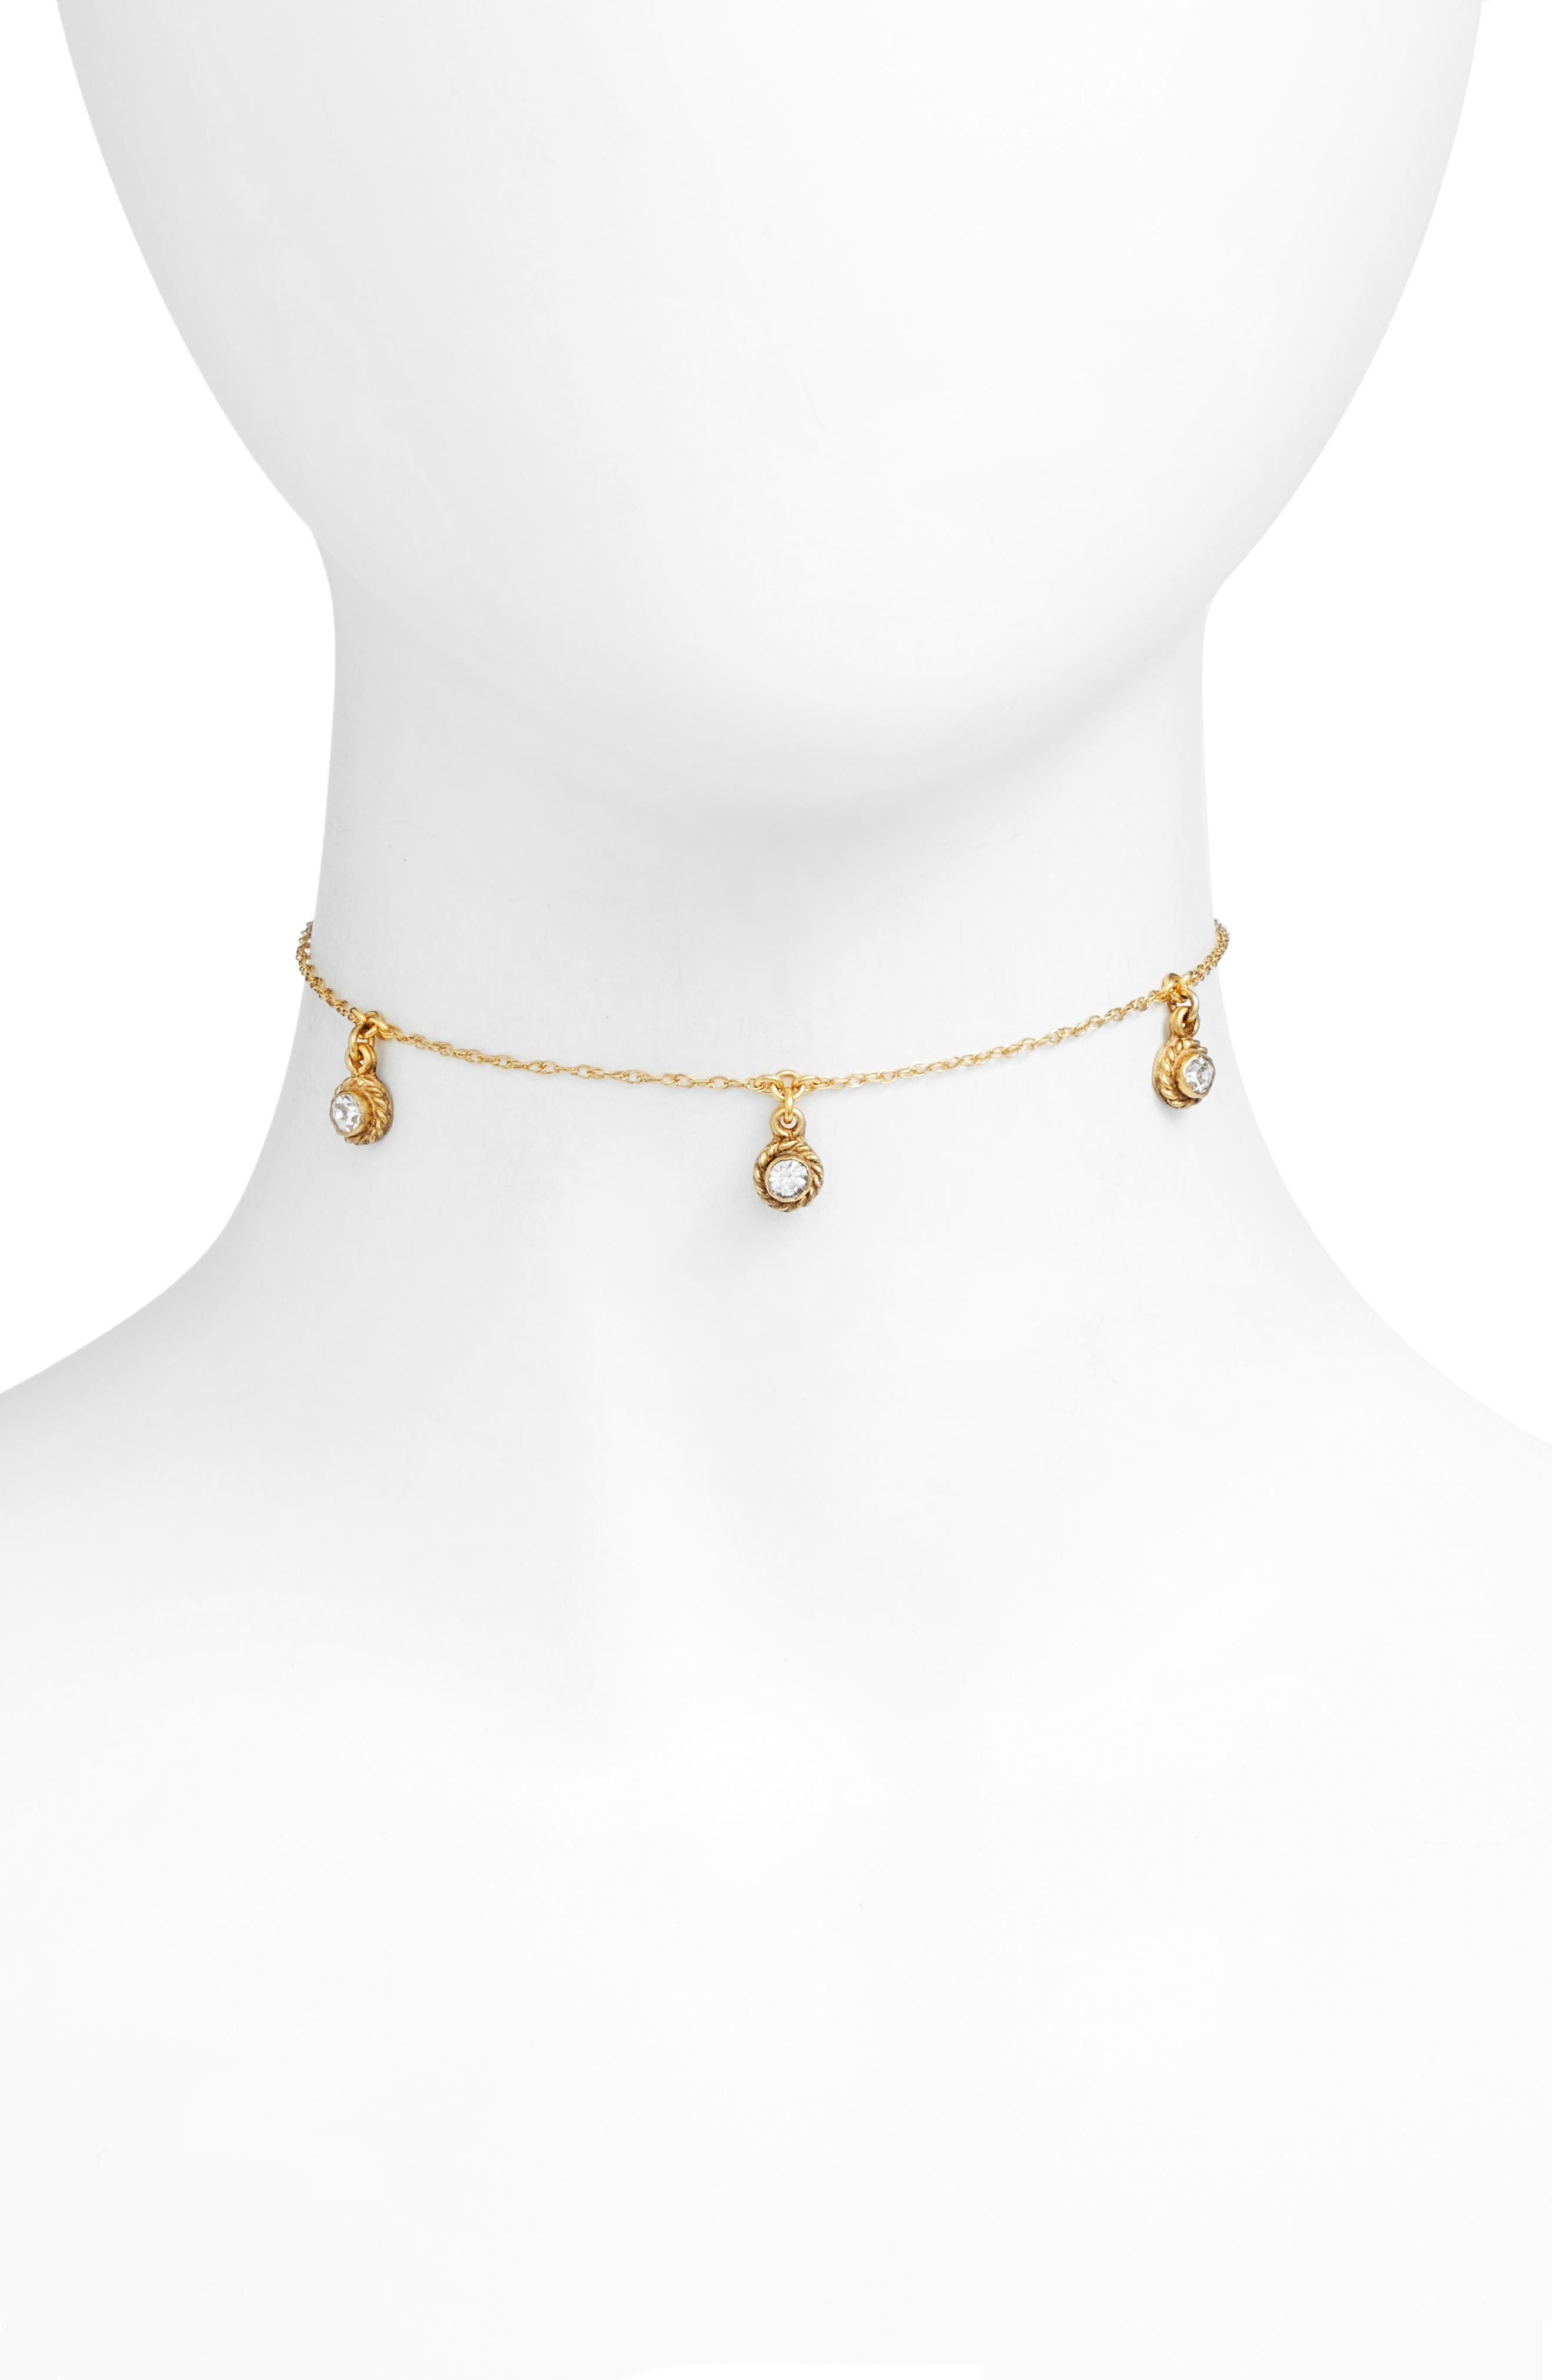 Virgins Saints & Angels Santa Monica Choker (Nordstrom Exclusive)